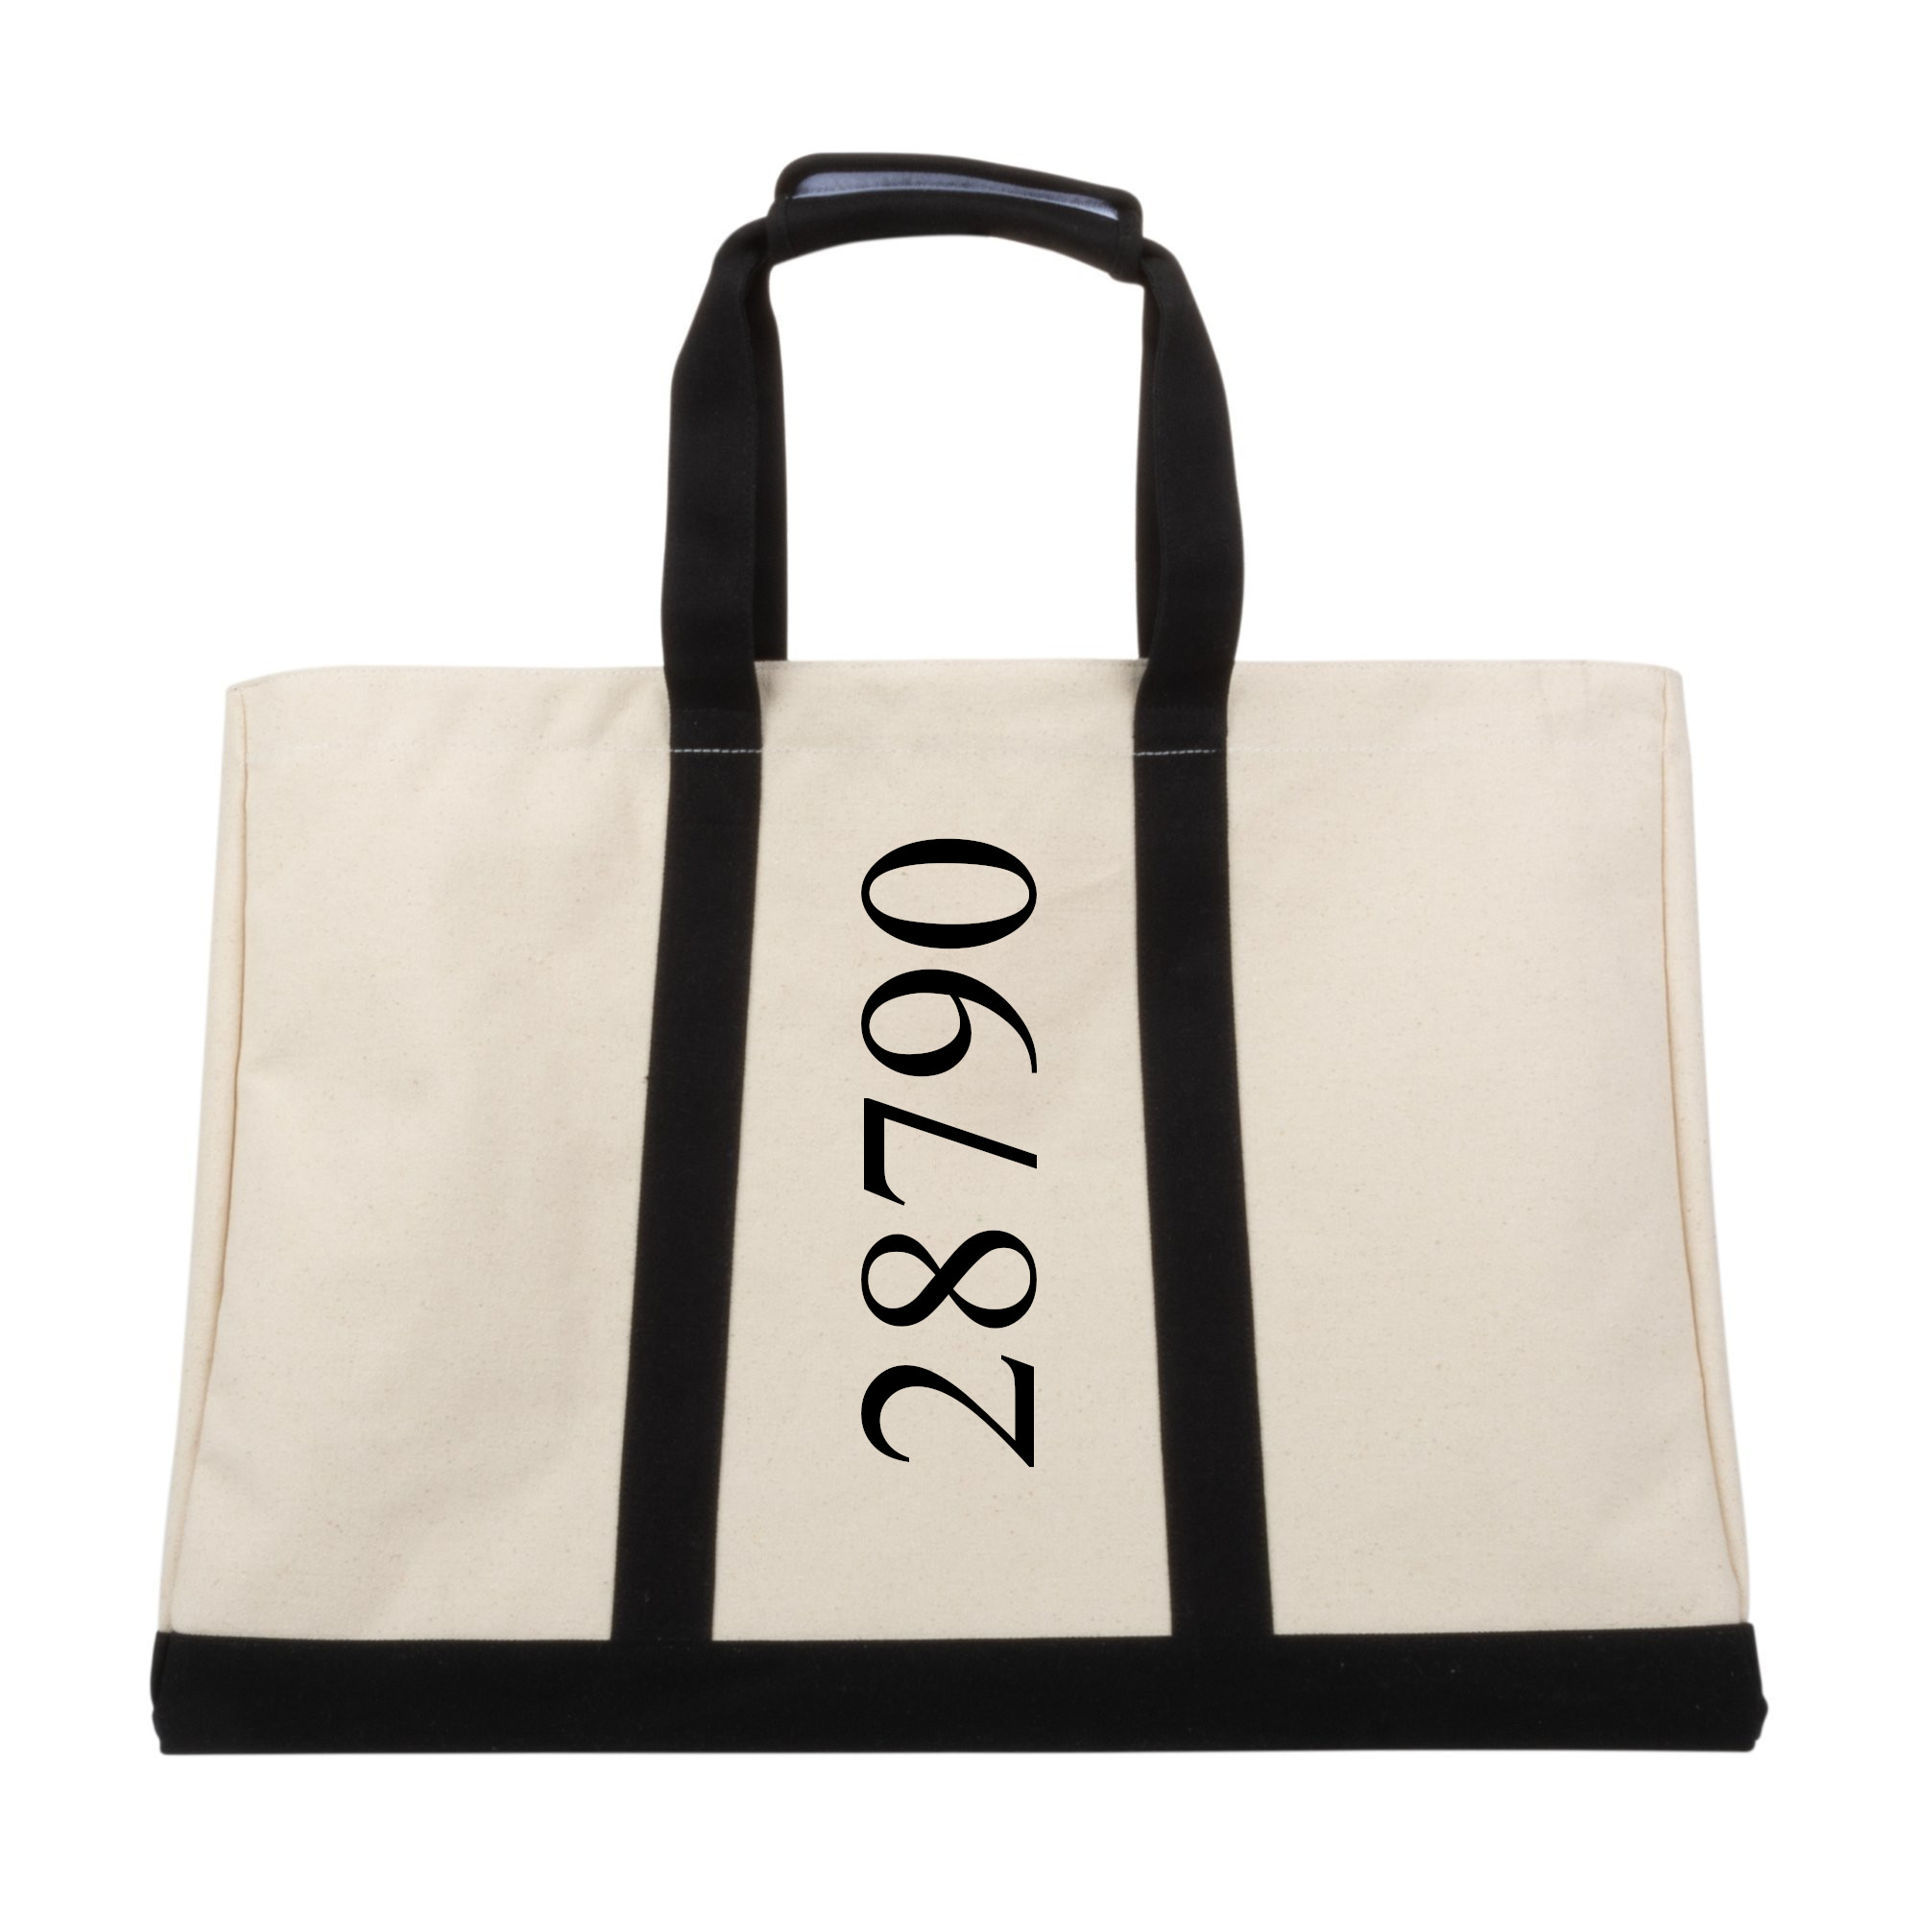 "Picture of Canvas Big Tote, 24"" long x 12"" wide x 18"" tall"